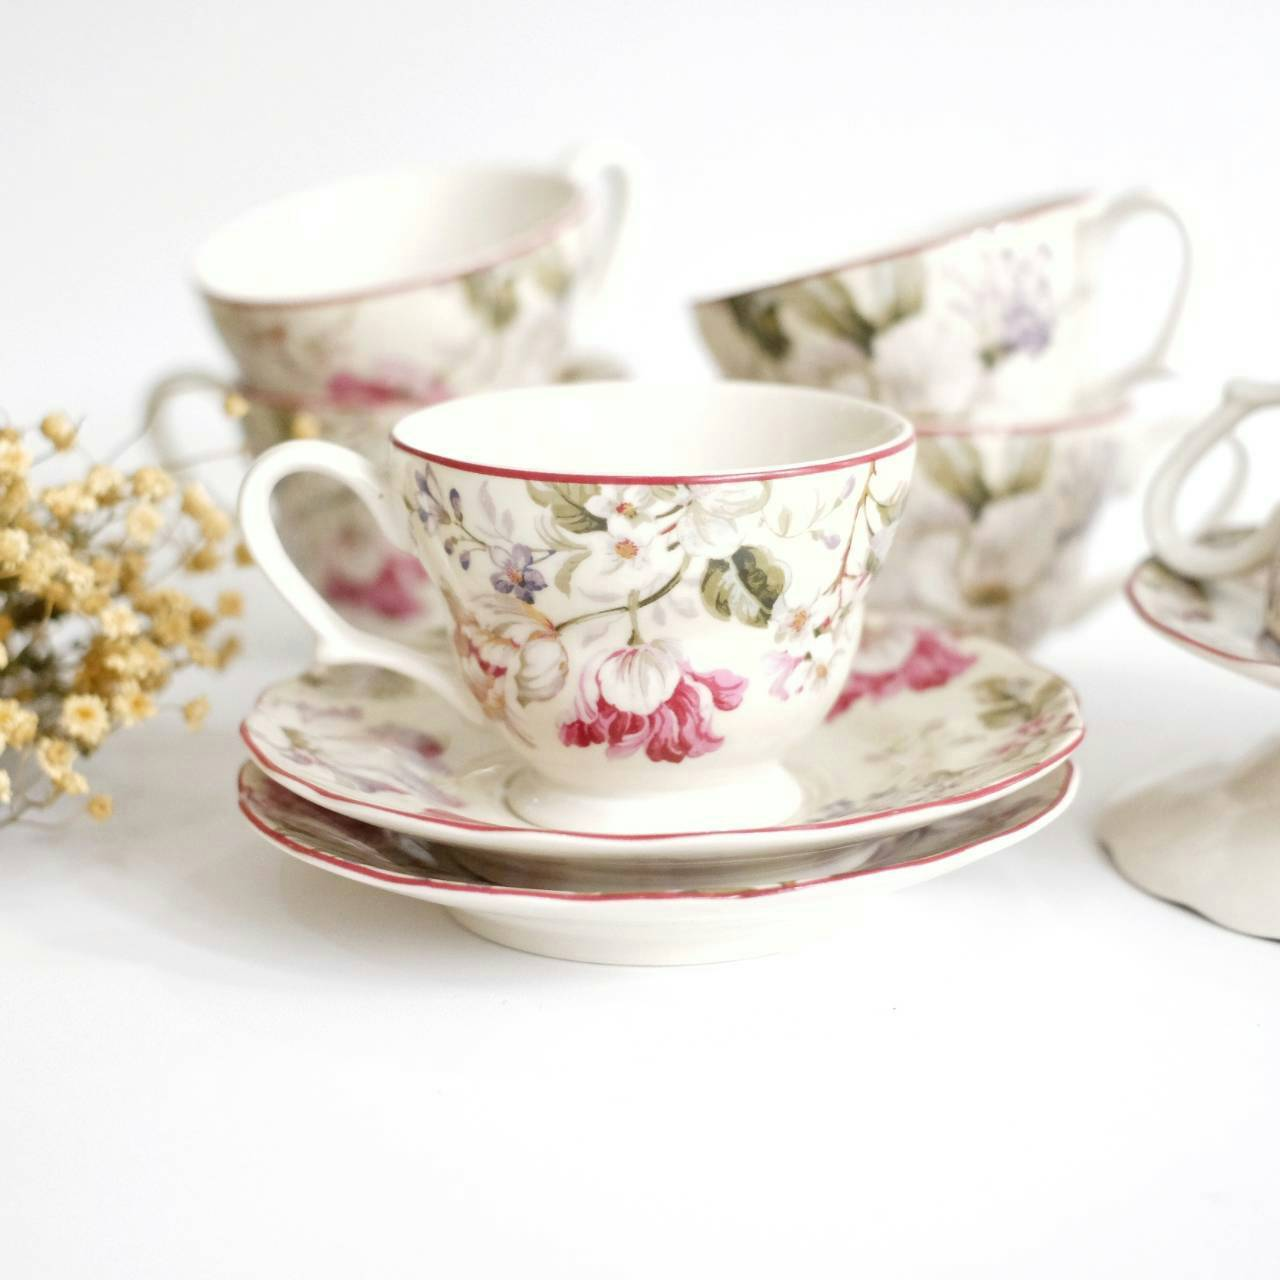 cup and saucer set of 6 with pink floral print